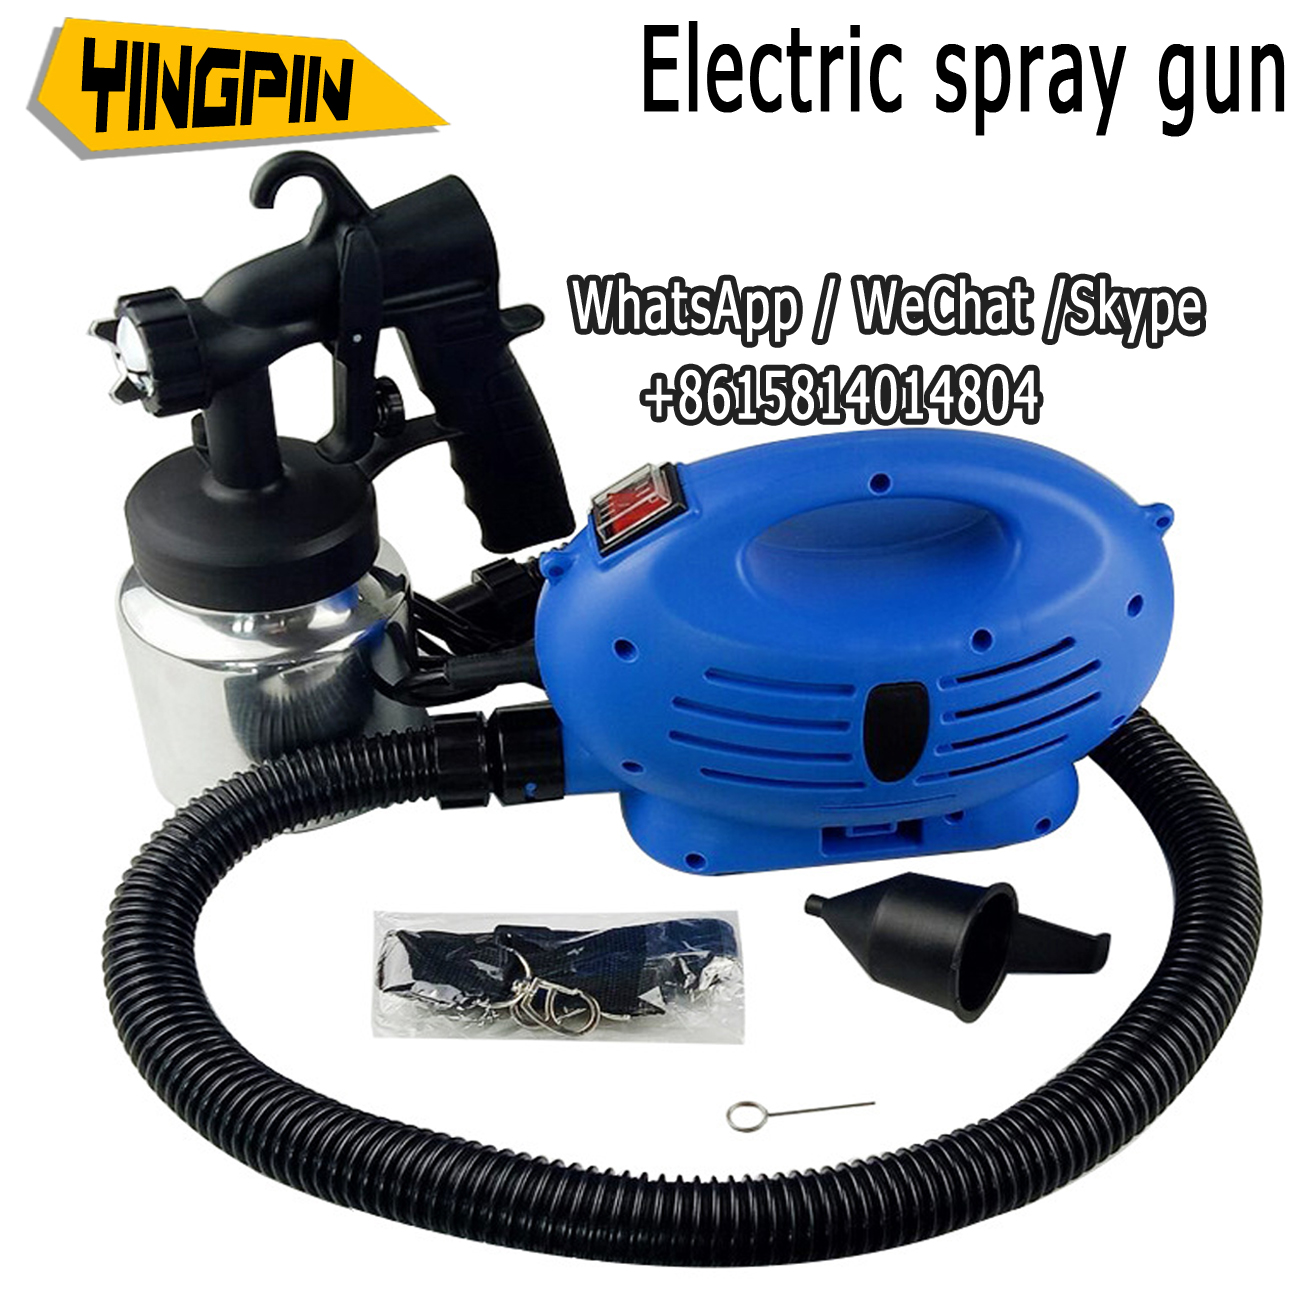 Electric spray gun with air compressor spray mode spray paint HVLP automobile furniture steel paint spray